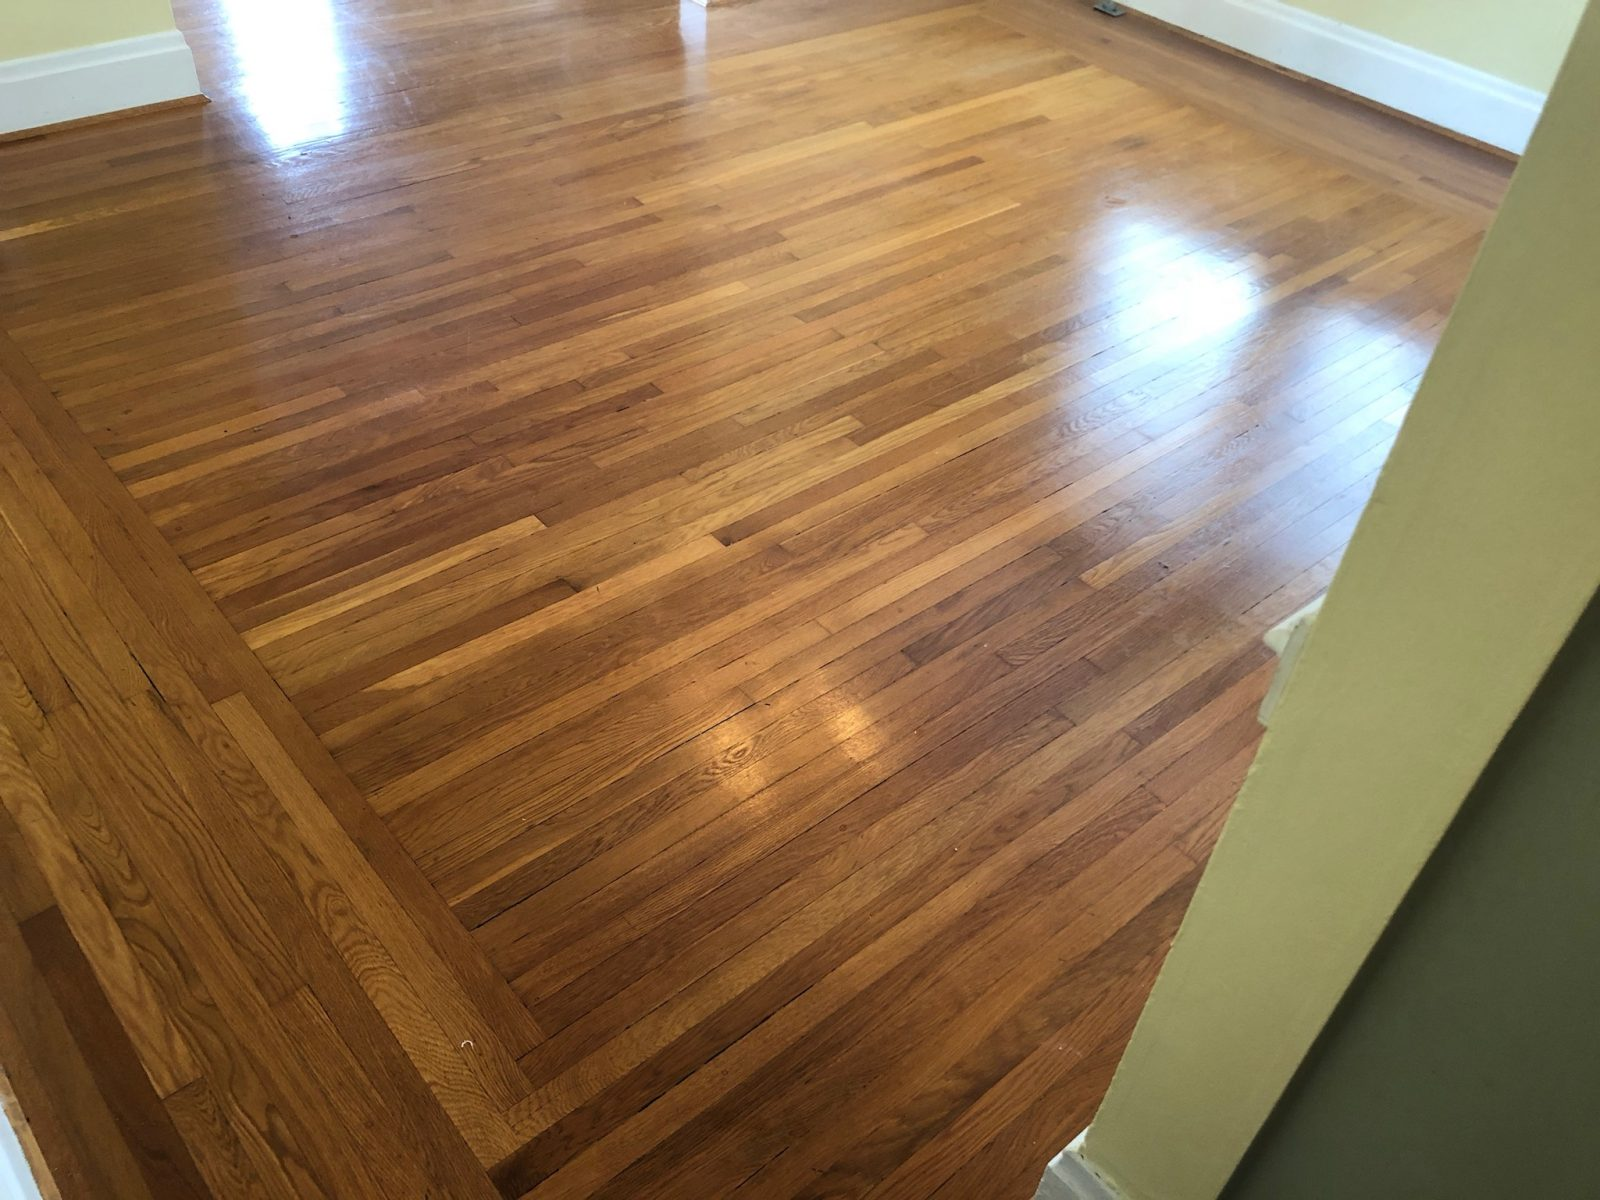 Professional Hardwood Floor Cleaning Cincinnati Ohio by Howards Cleaning Service